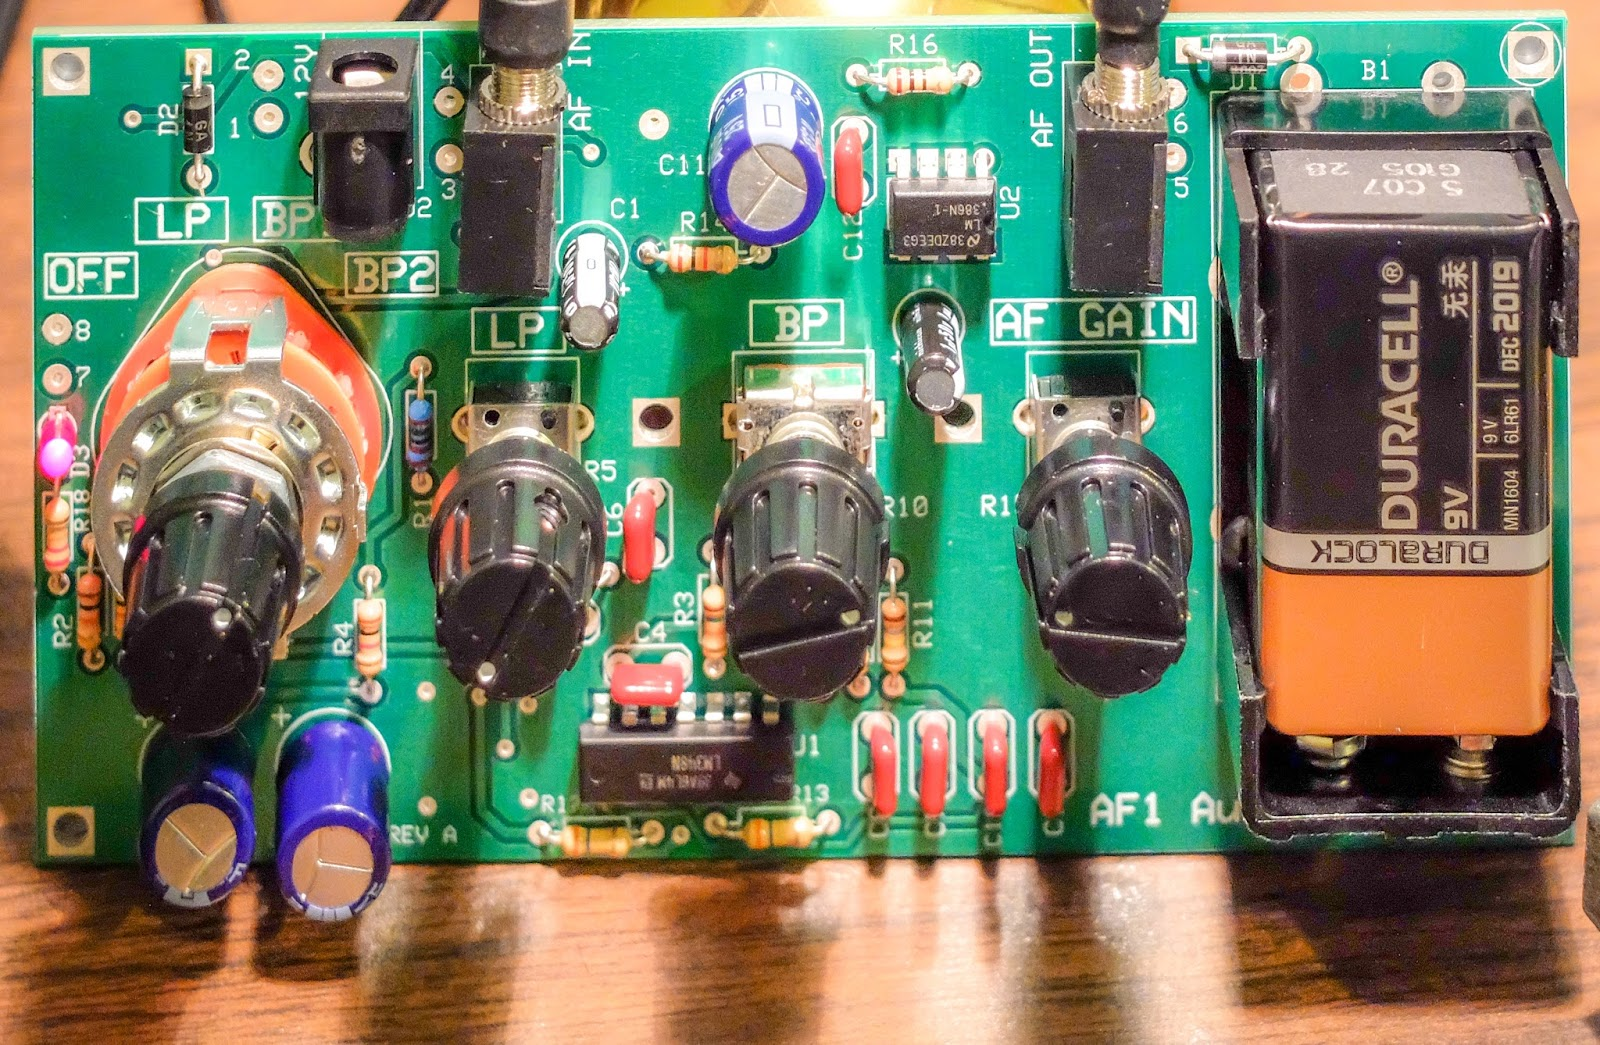 Ten tec century 21 archives amateurradio the elecraft af 1 is an excellent addition i think it is going to serve me well with my vintage radio now to find a project box to fit it freerunsca Images